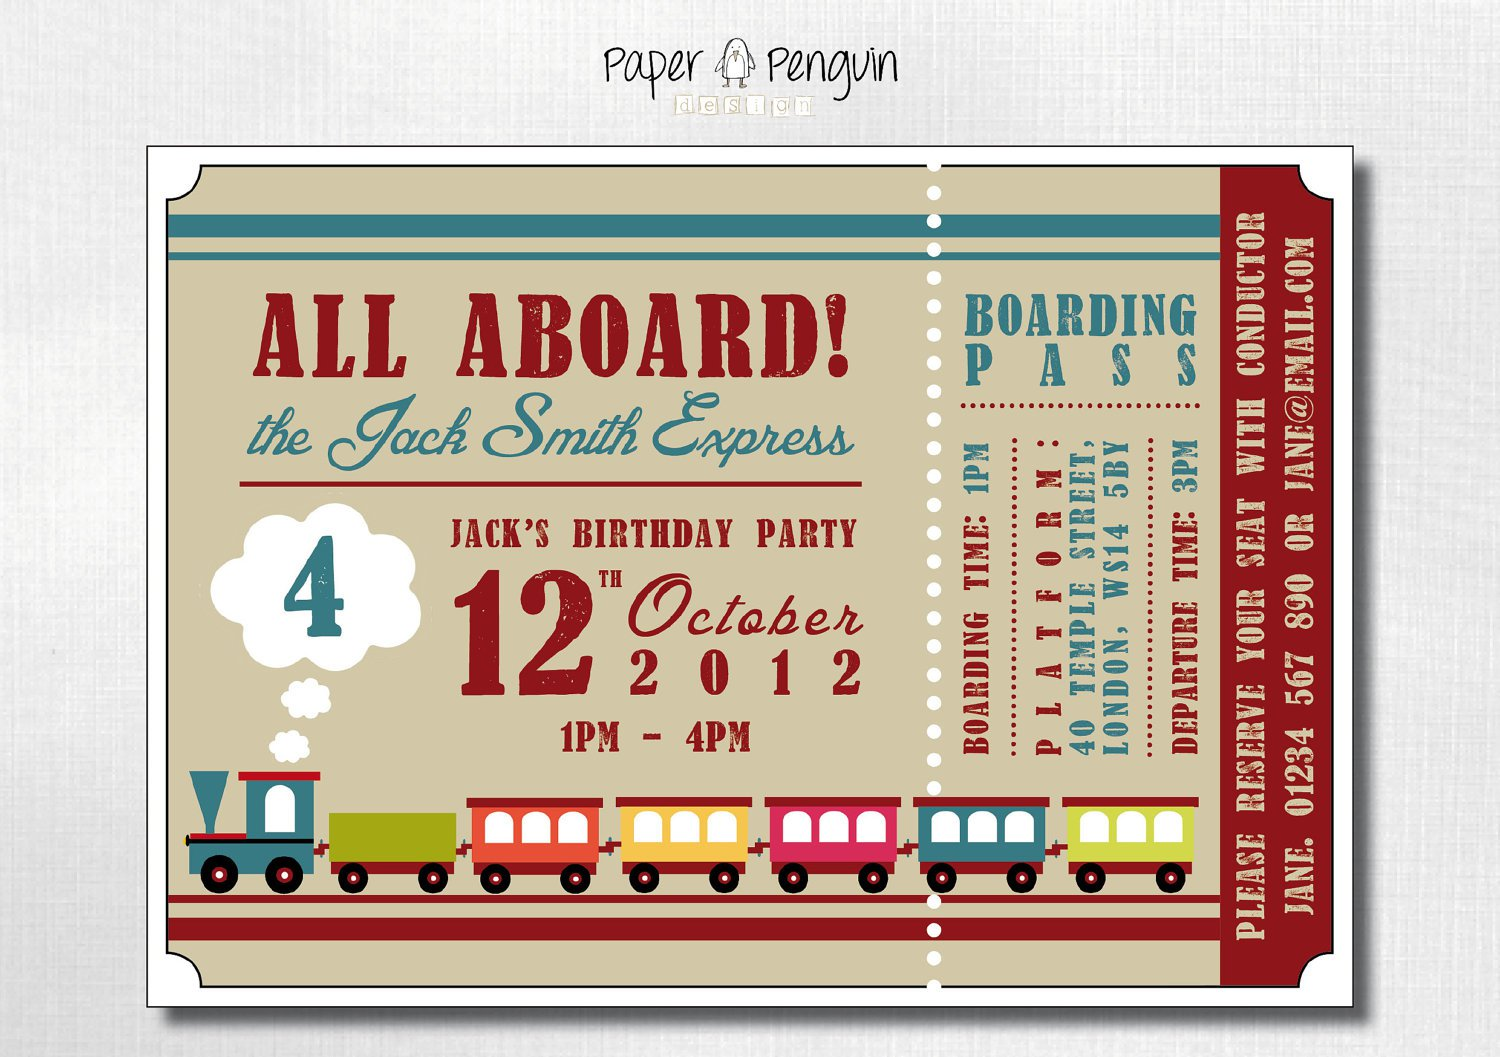 Magnificent Train Party Invitation Template Photos - Entry Level ...